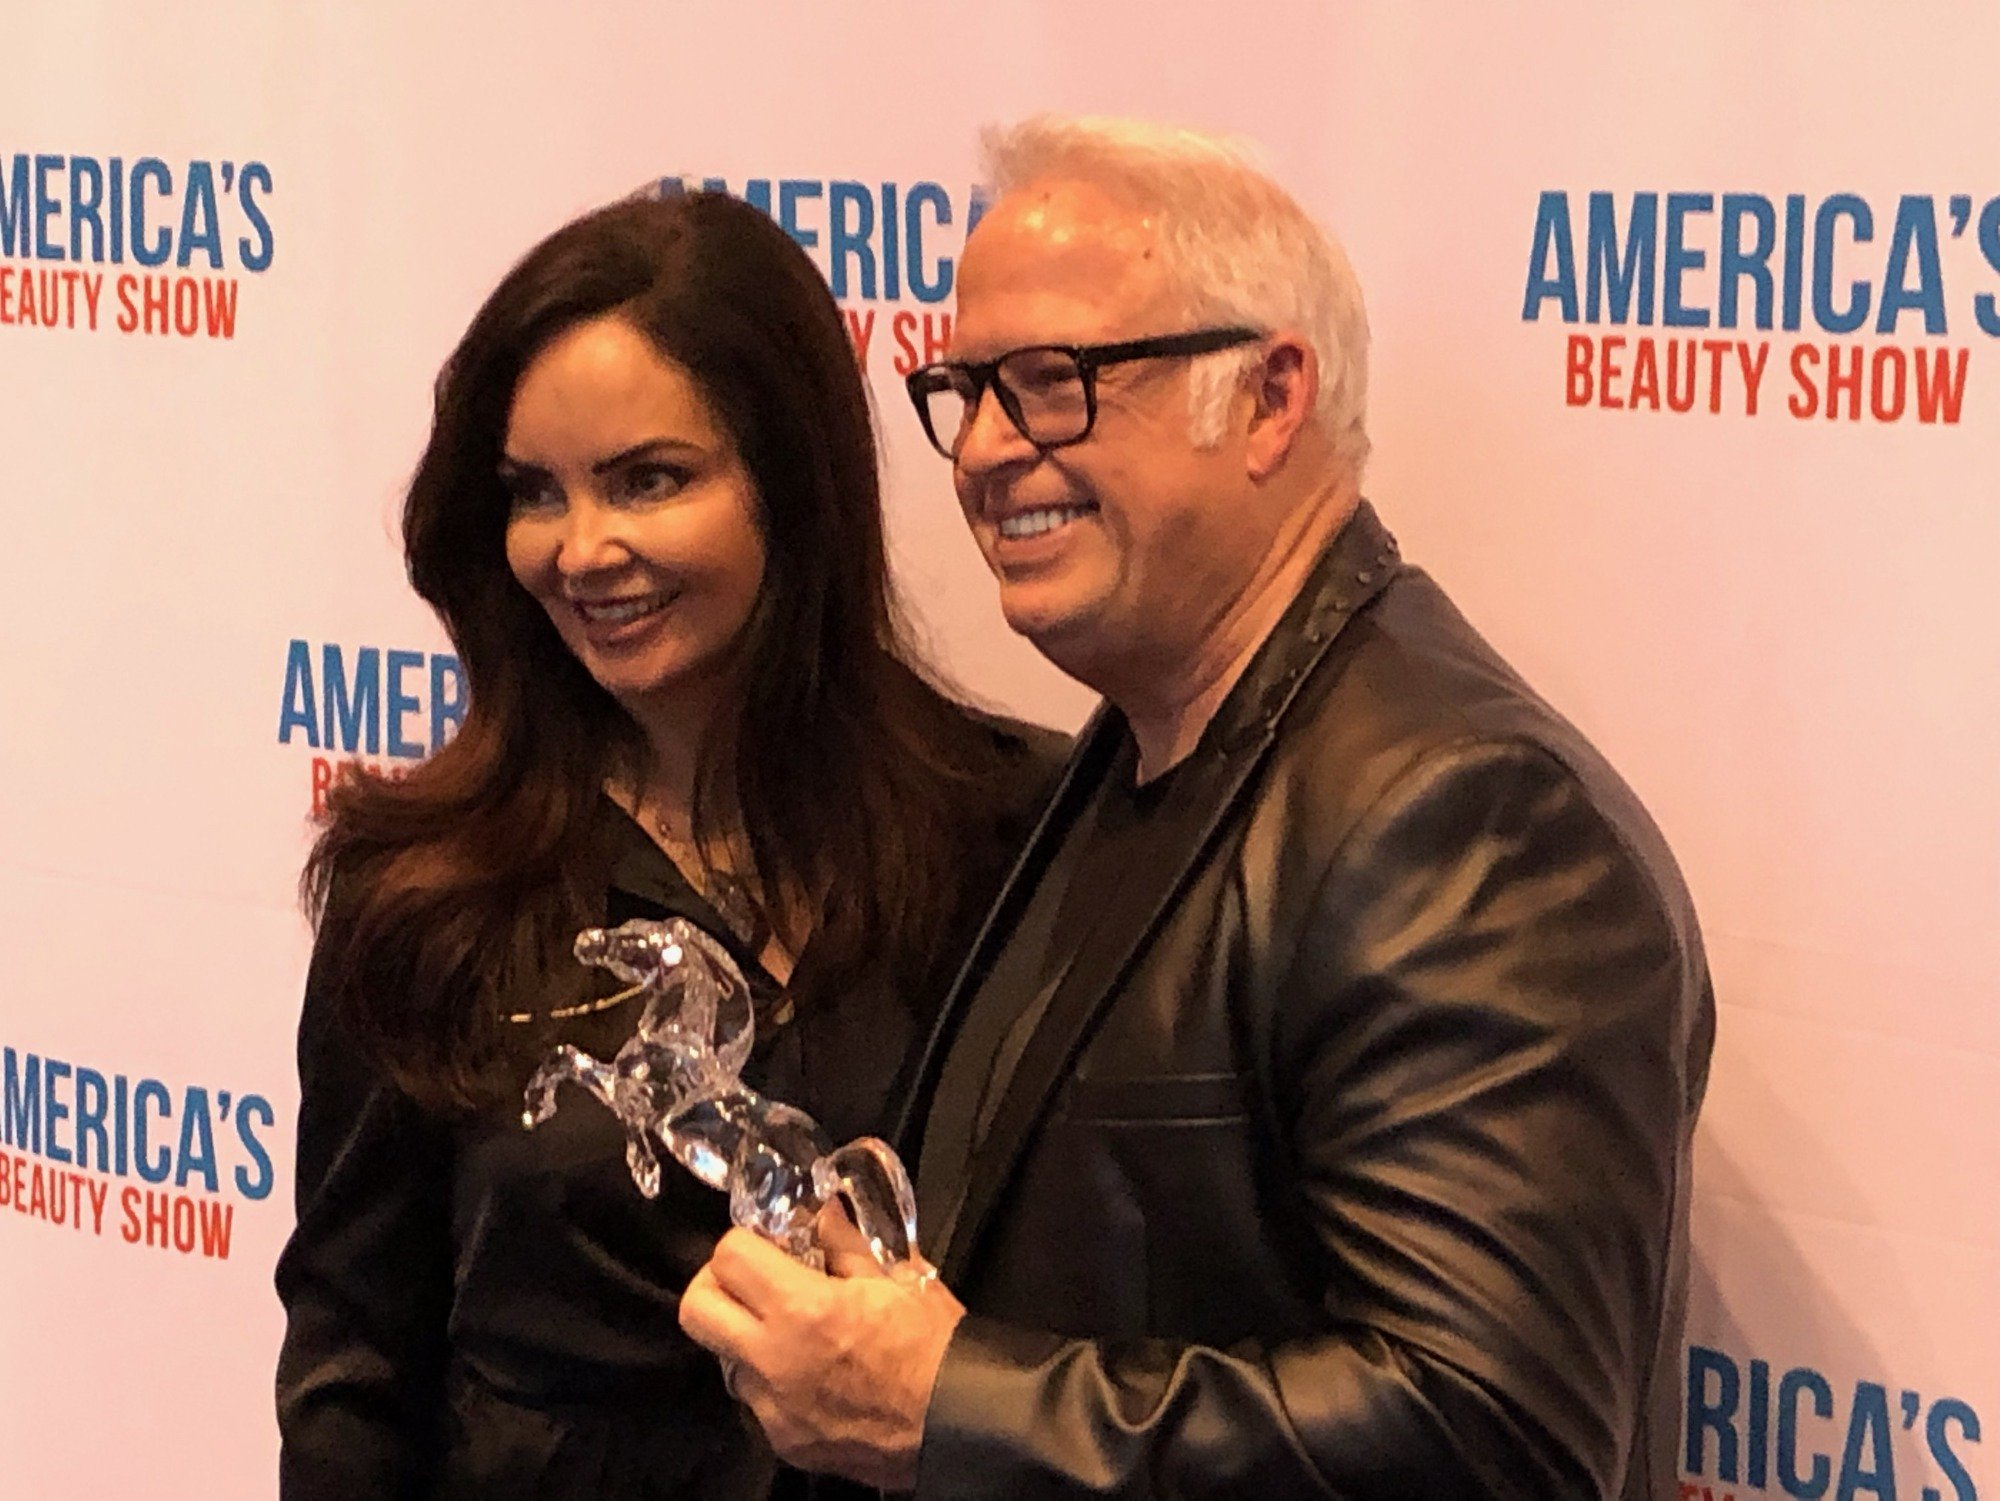 Frank Gambuzza, pictured with his wife Belinda Gambuzza, accepts the 2019 Jerry Gordon Salon Business Leadership Award at the Cosmetologists Chicago President's VIP Reception held during America's Beauty Show.